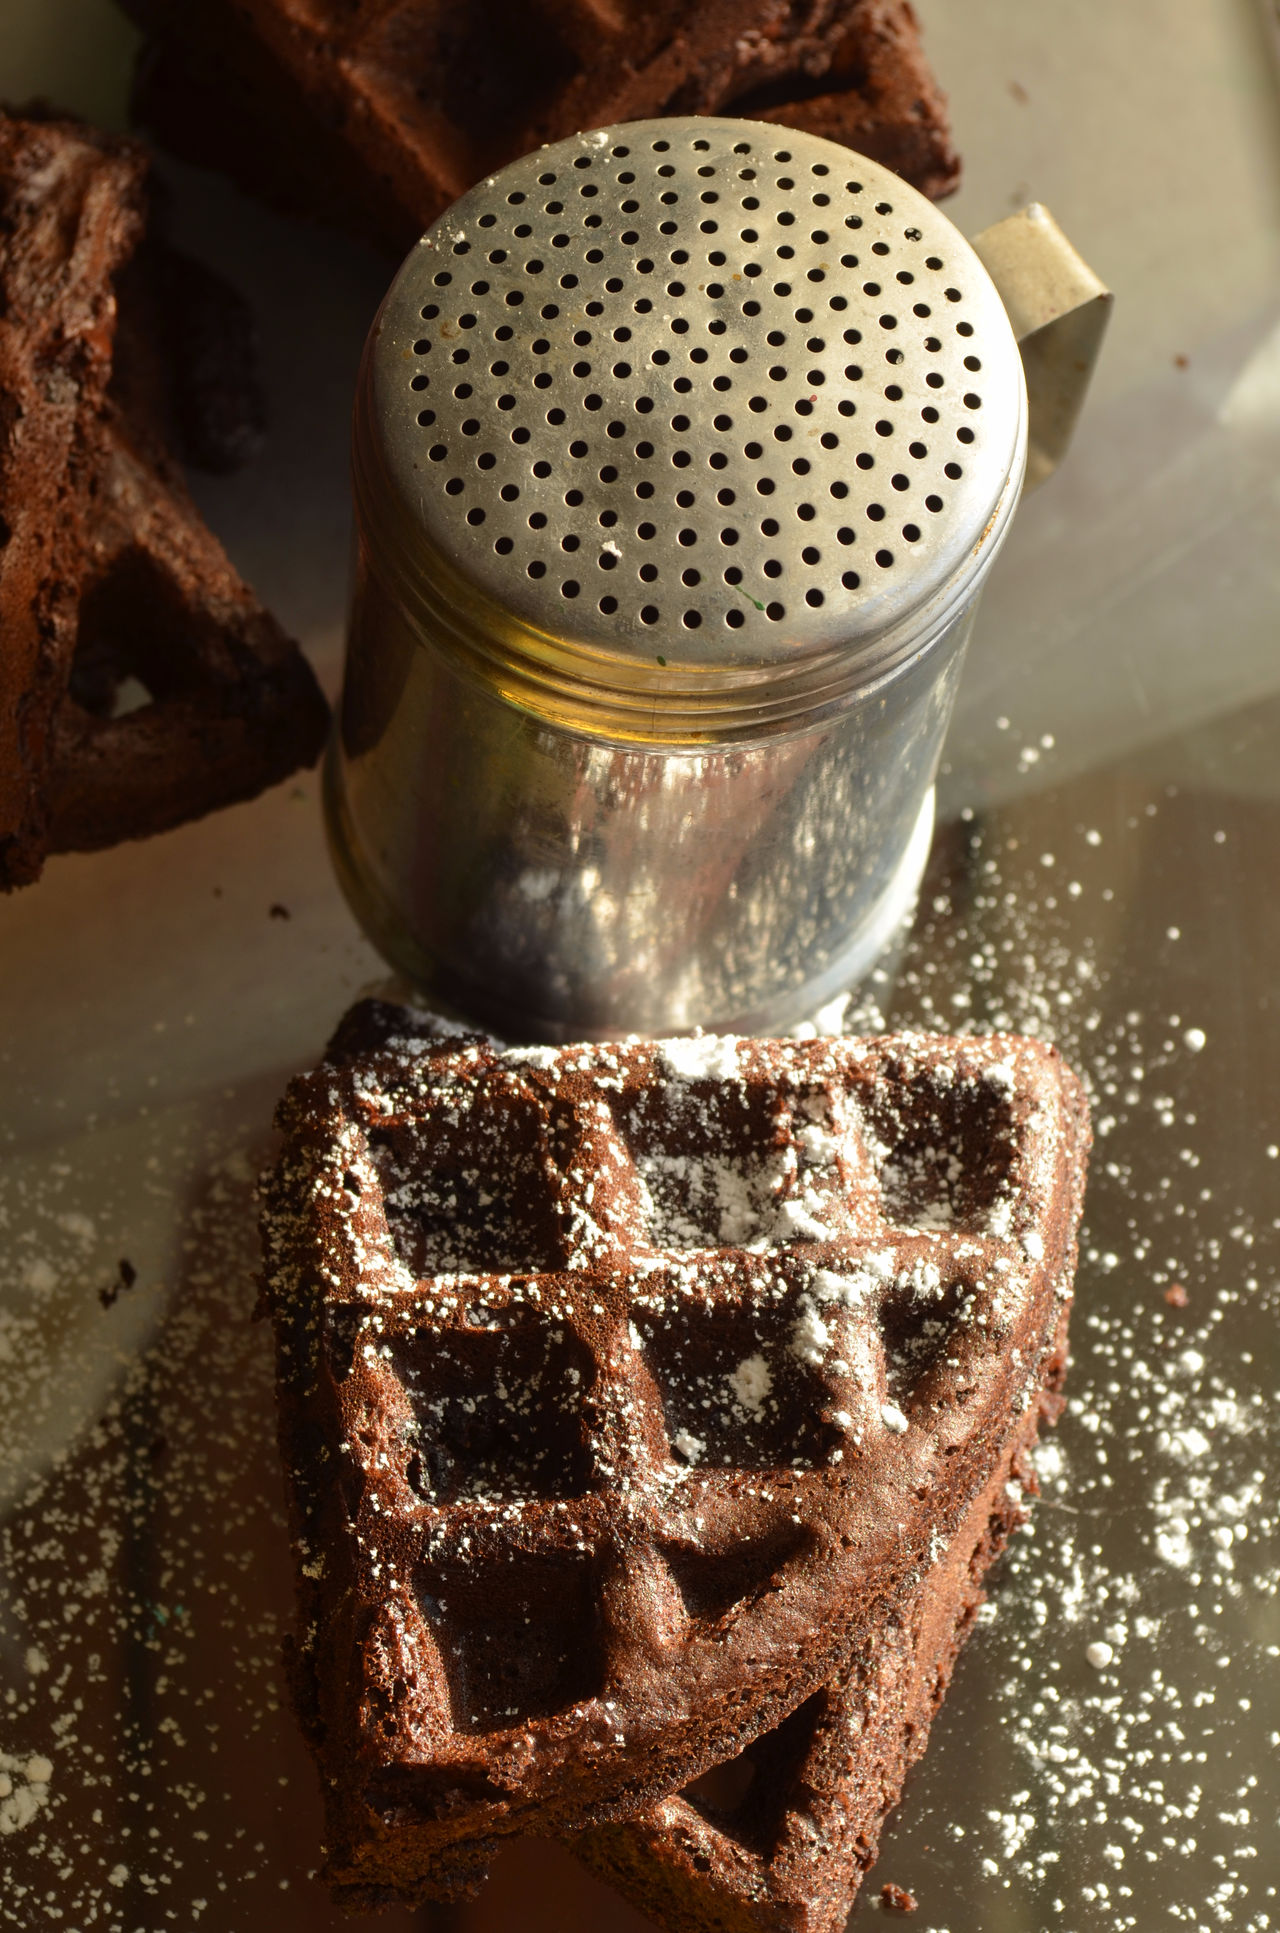 chocolate brownie waffles sprinkled with powdered sugar and metal sugar shaker Baked Chocolate Food Fresh Indoors  No People Powdered Sugar Ready To Eat Shaker Waffle Waffles